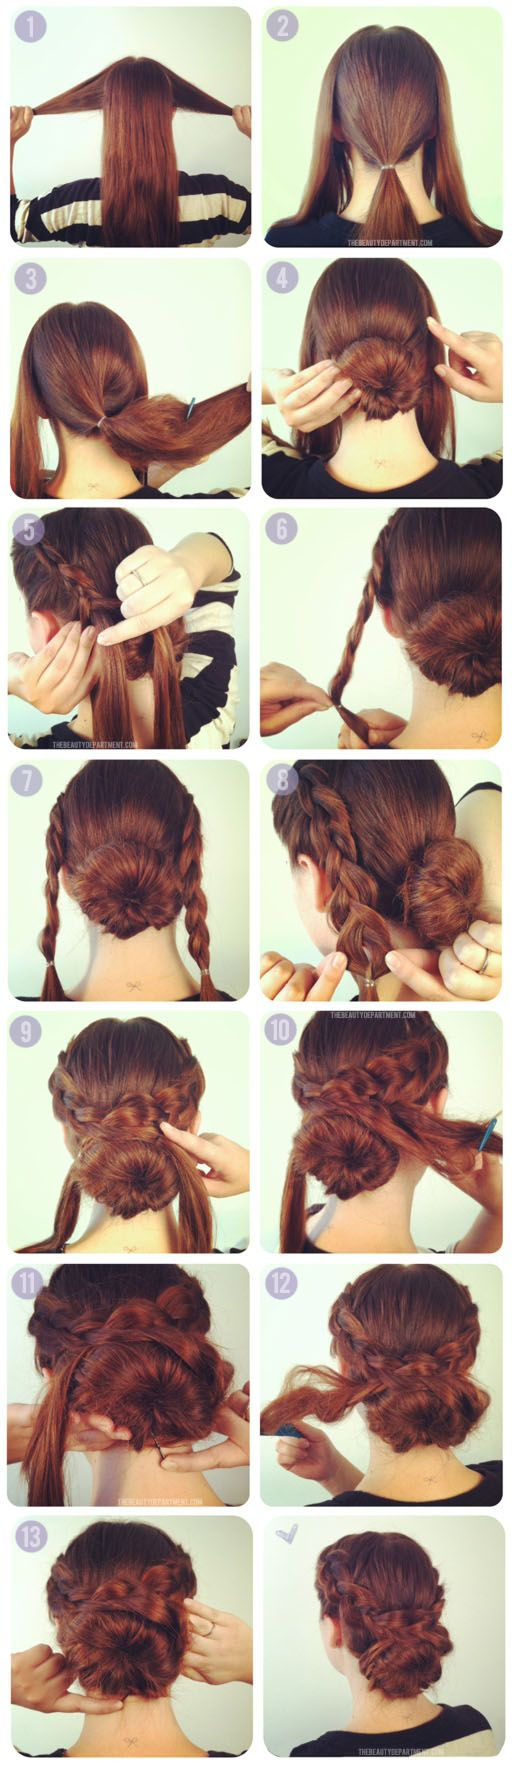 oh how I wish I could braid my hair cuz this would be awesome too for Monday or anytime I go out TBDDOUBLEBRAIDBUN